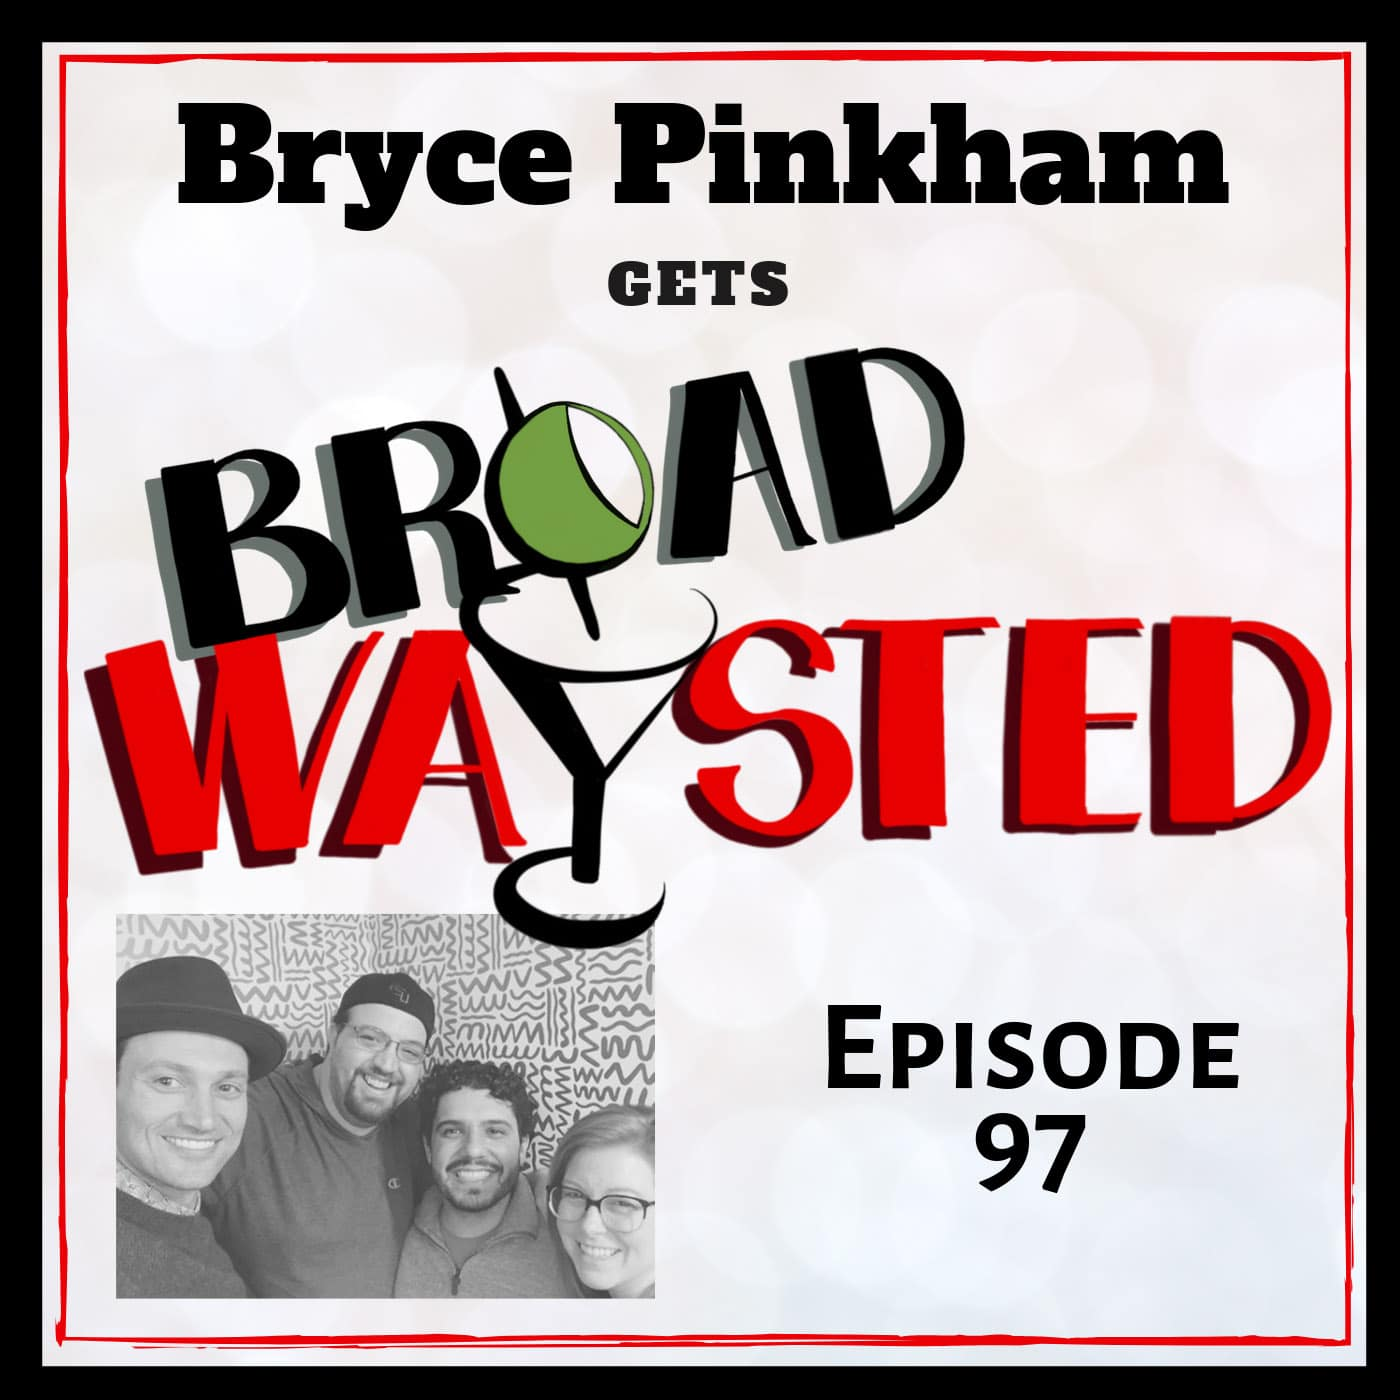 Broadwaysted Ep 97 Bryce Pinkham